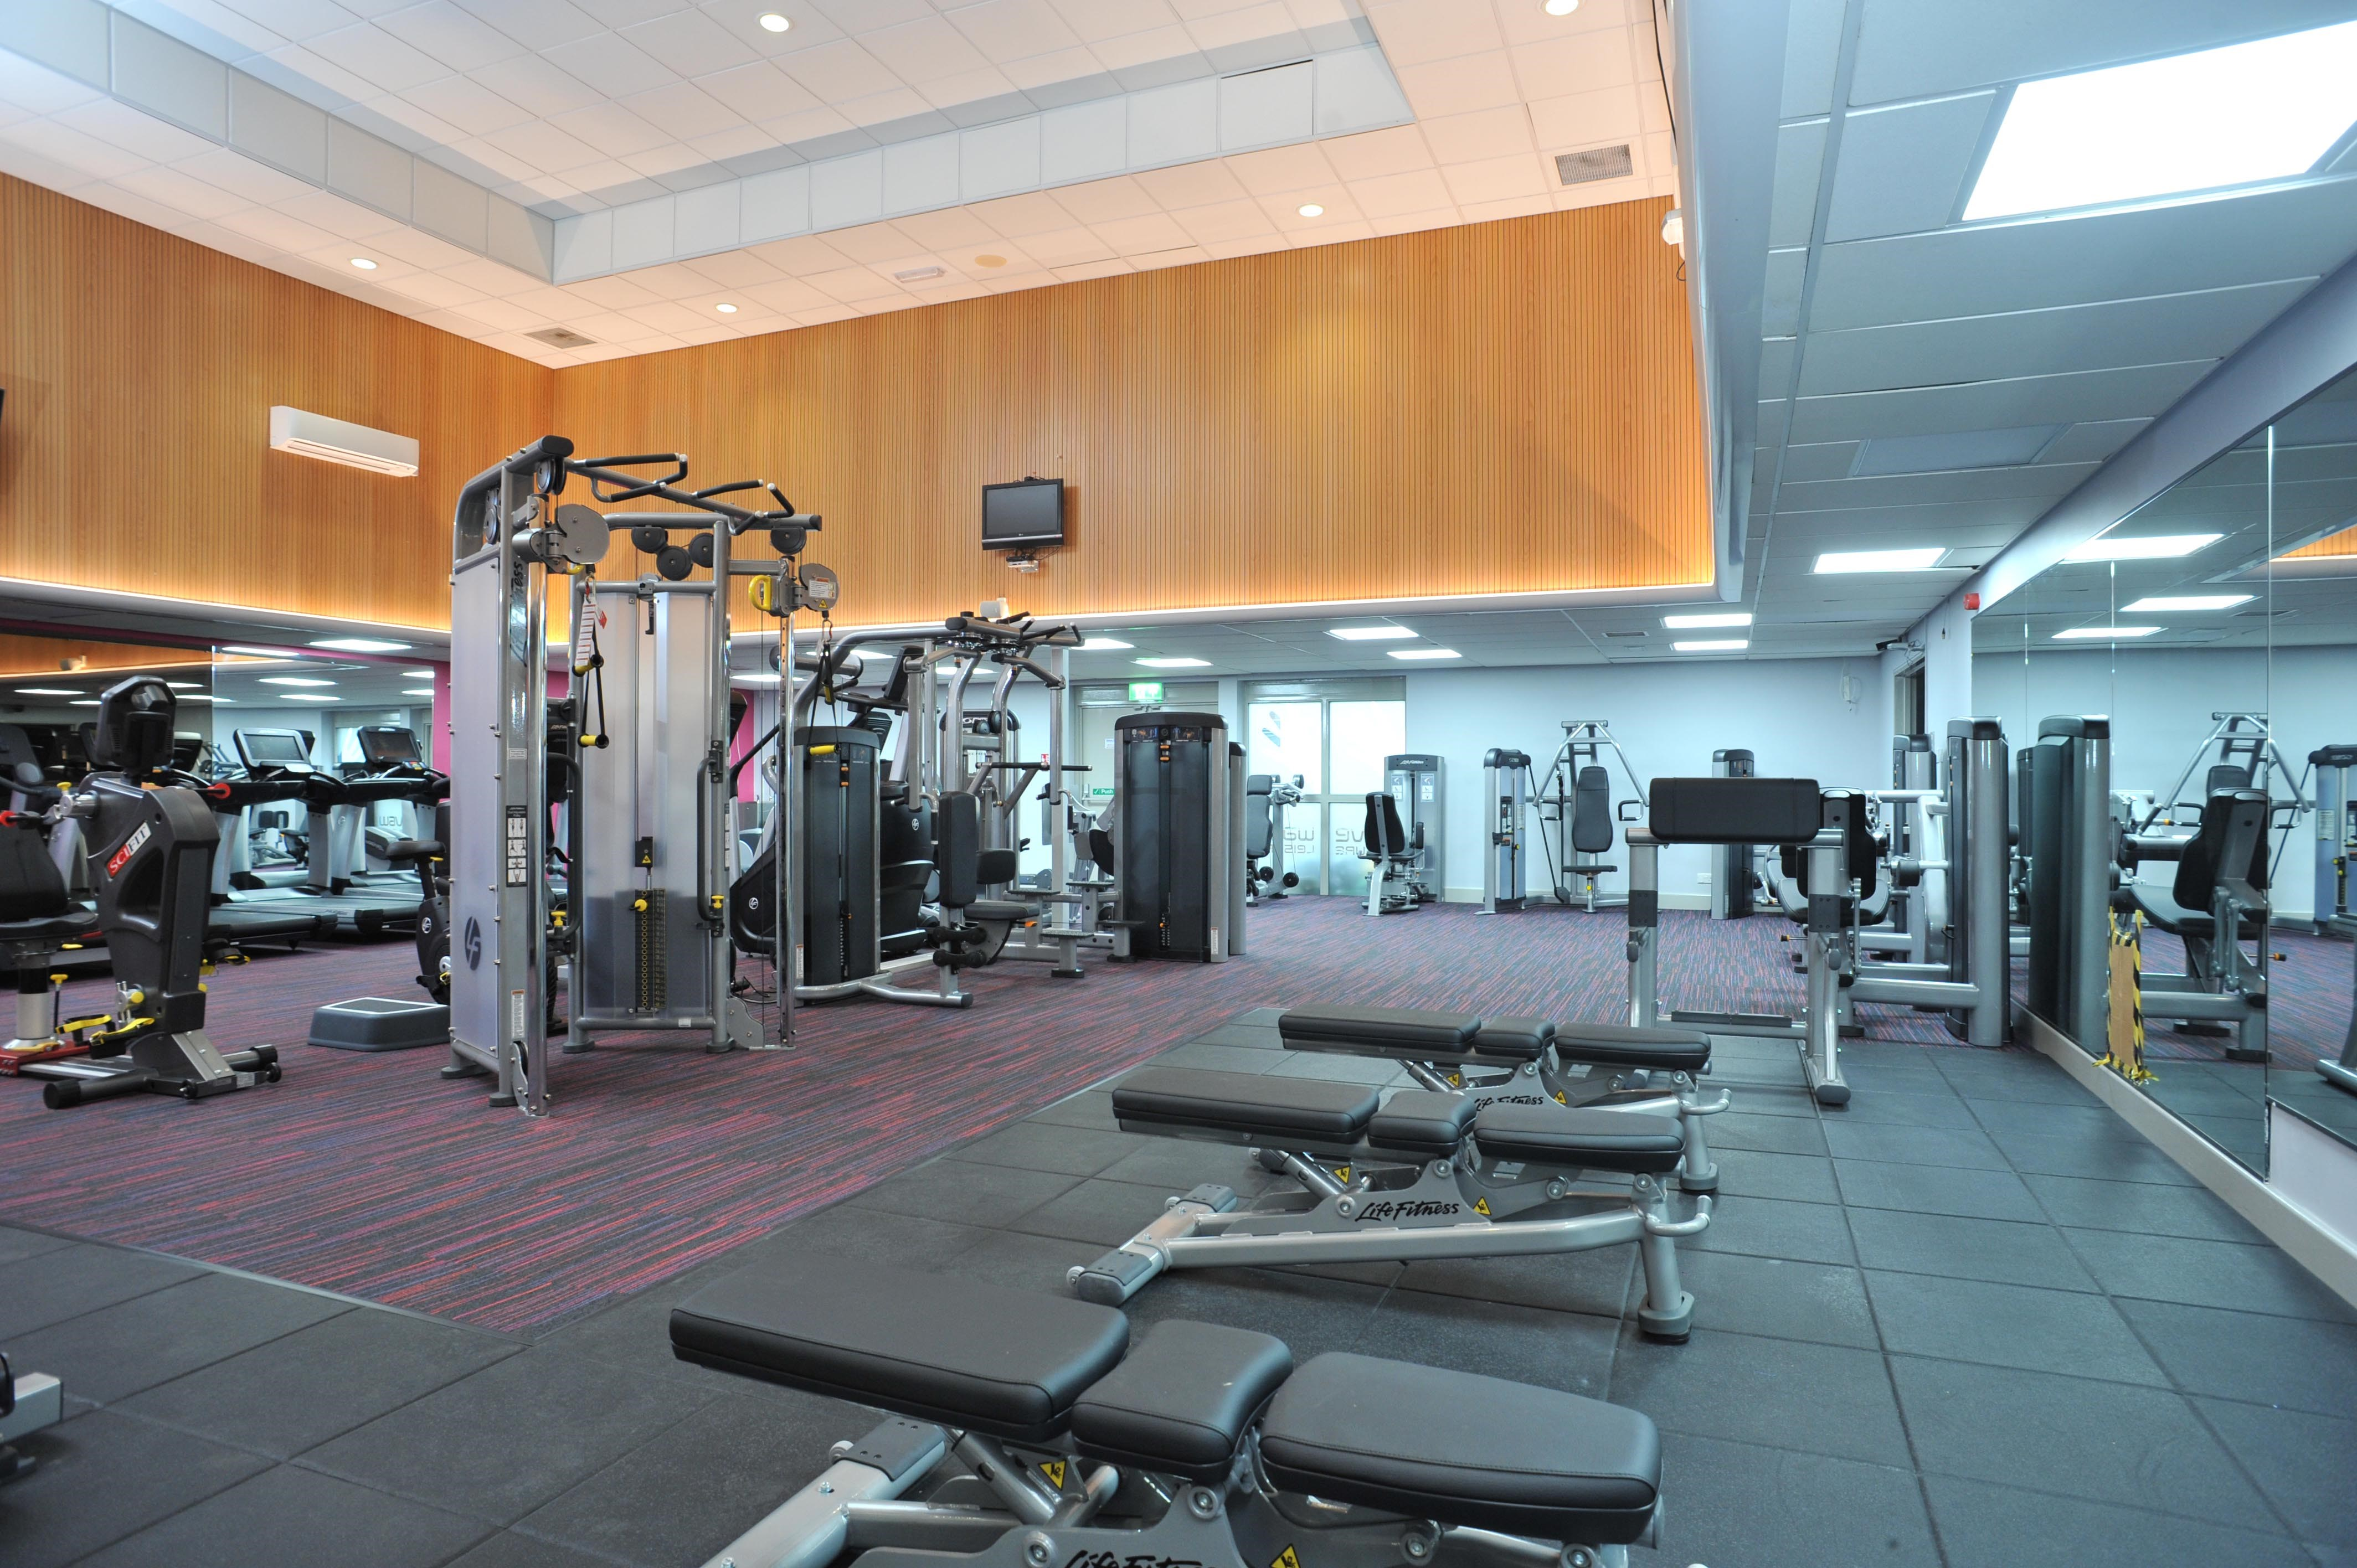 Peacehaven Leisure Centre